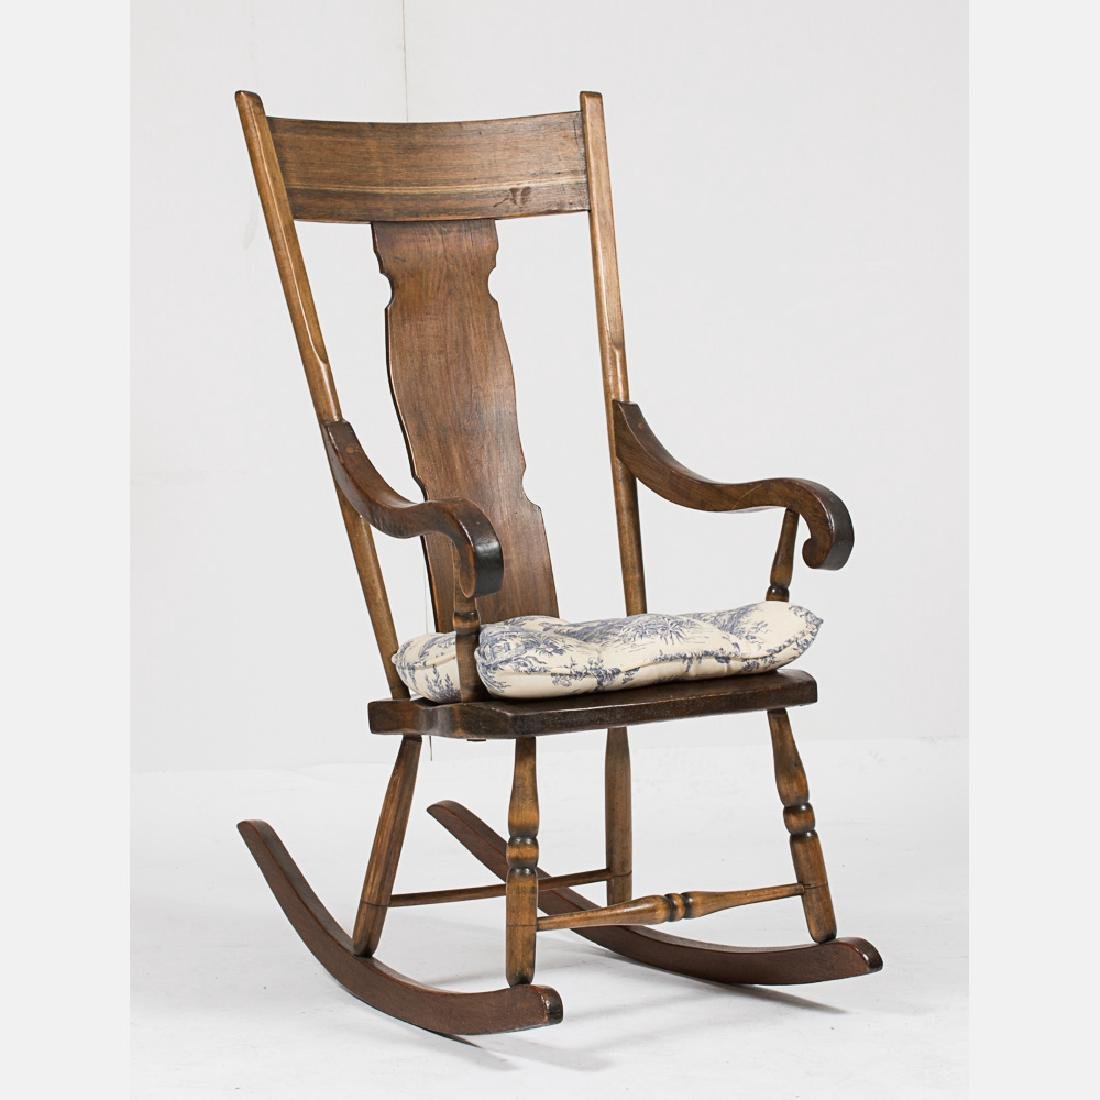 An American Walnut Rocking Chair, Early 20th Century.